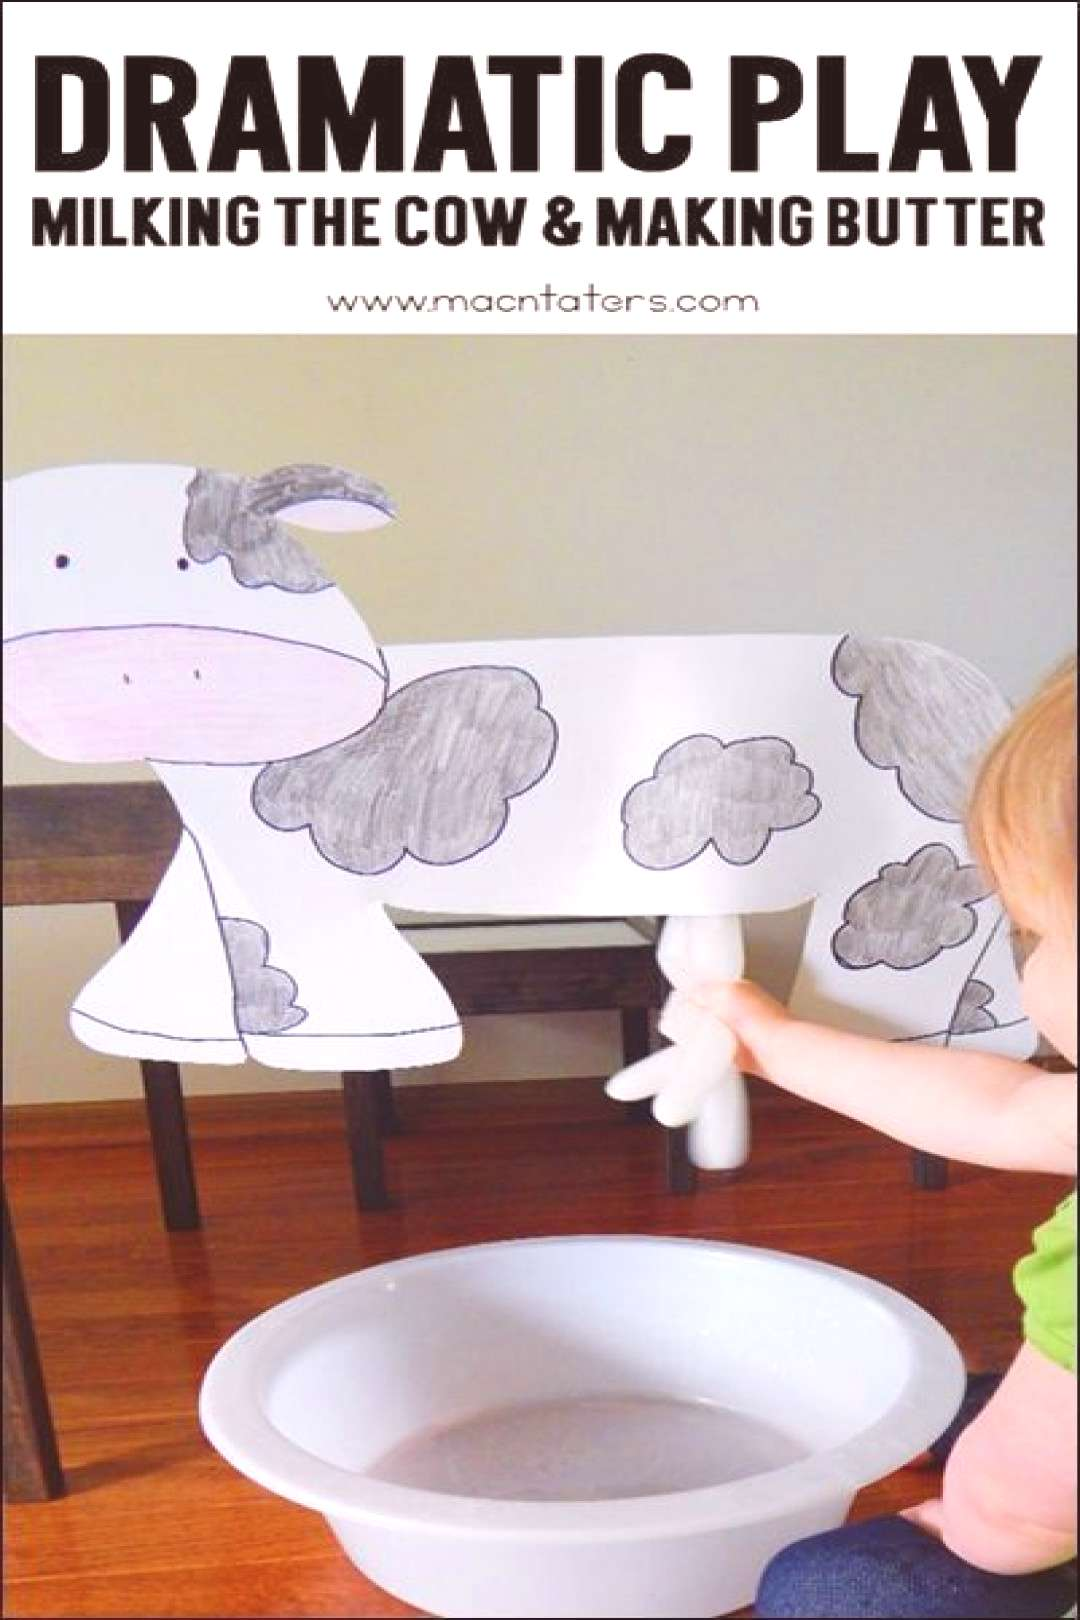 Pretend play is an important part of childhood. This dramatic play milking the cow activity is perf